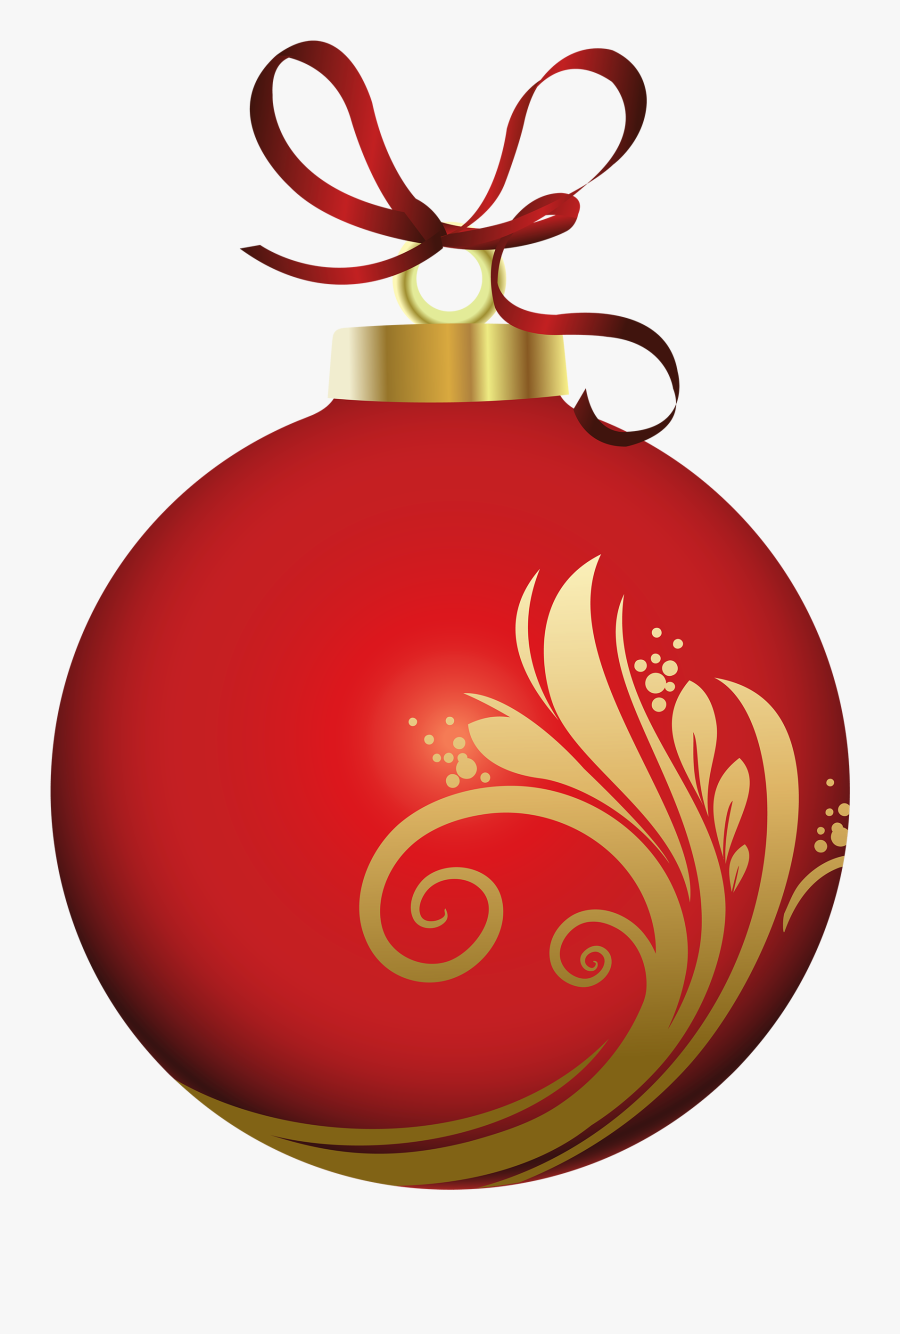 Christmas Ornament Clipart Png Red Christmas Ornament - Christmas Ball Decoration Png, Transparent Clipart